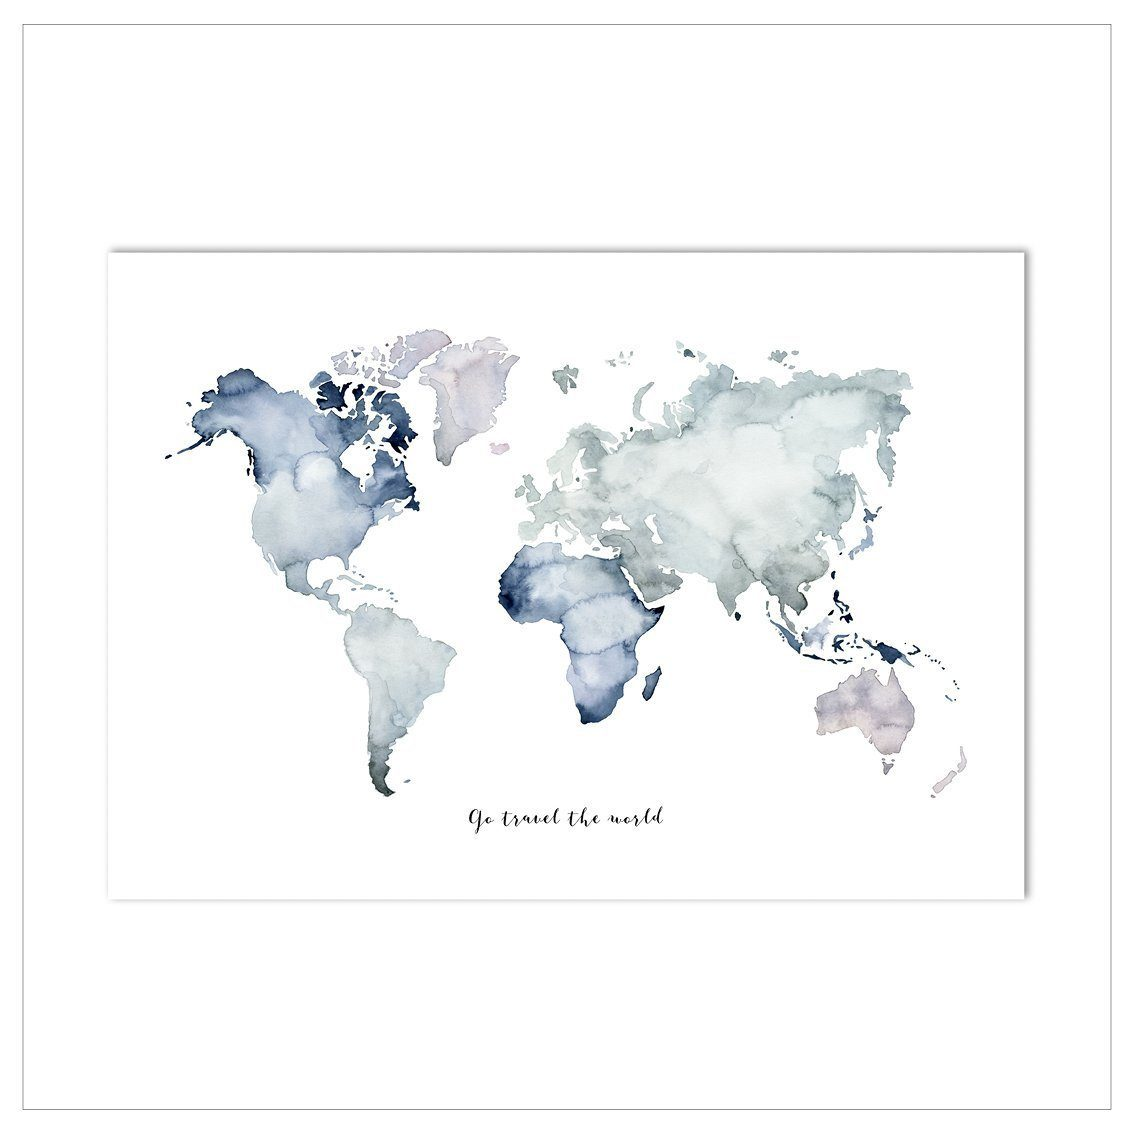 Kunstdruck - WELTKARTE | GO TRAVEL THE WORLD Kunstdruck Leo la Douce